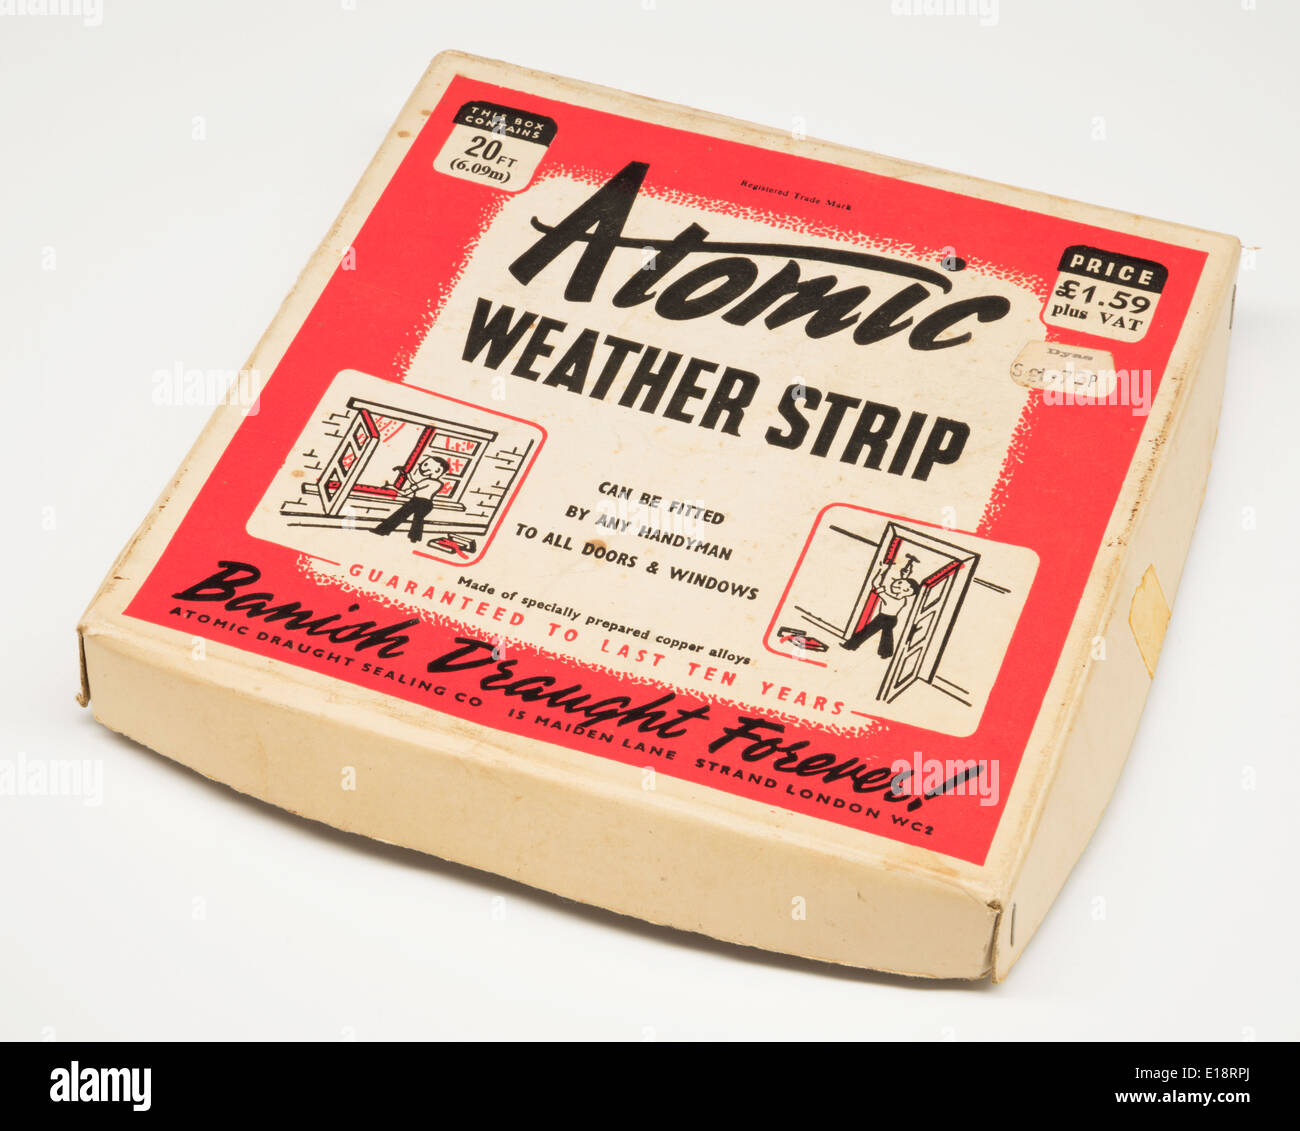 Atomic weather strip. Banish draught forever. 1960's product packaging. - Stock Image